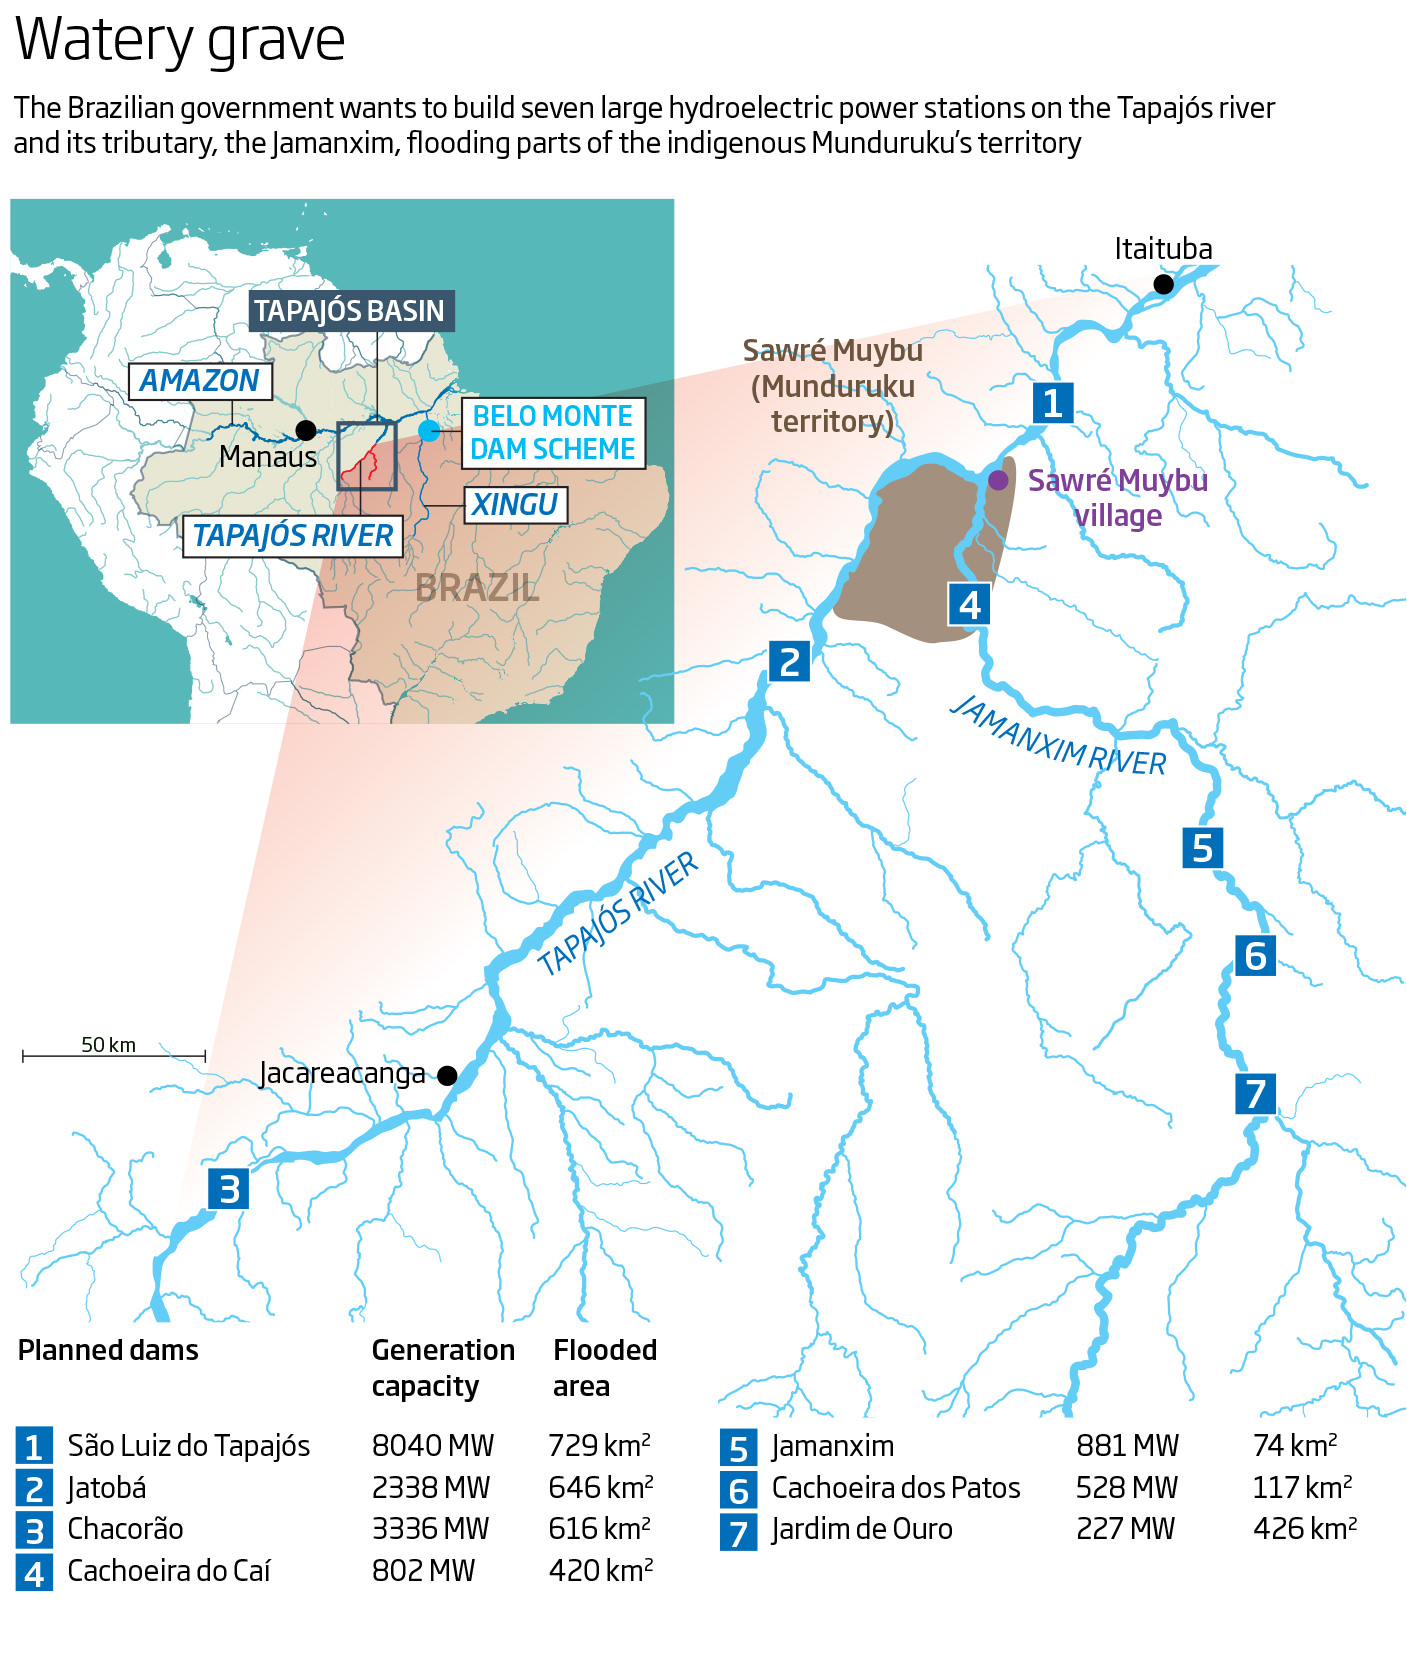 Dambusters: The end of Brazil's hydroelectric dreams?